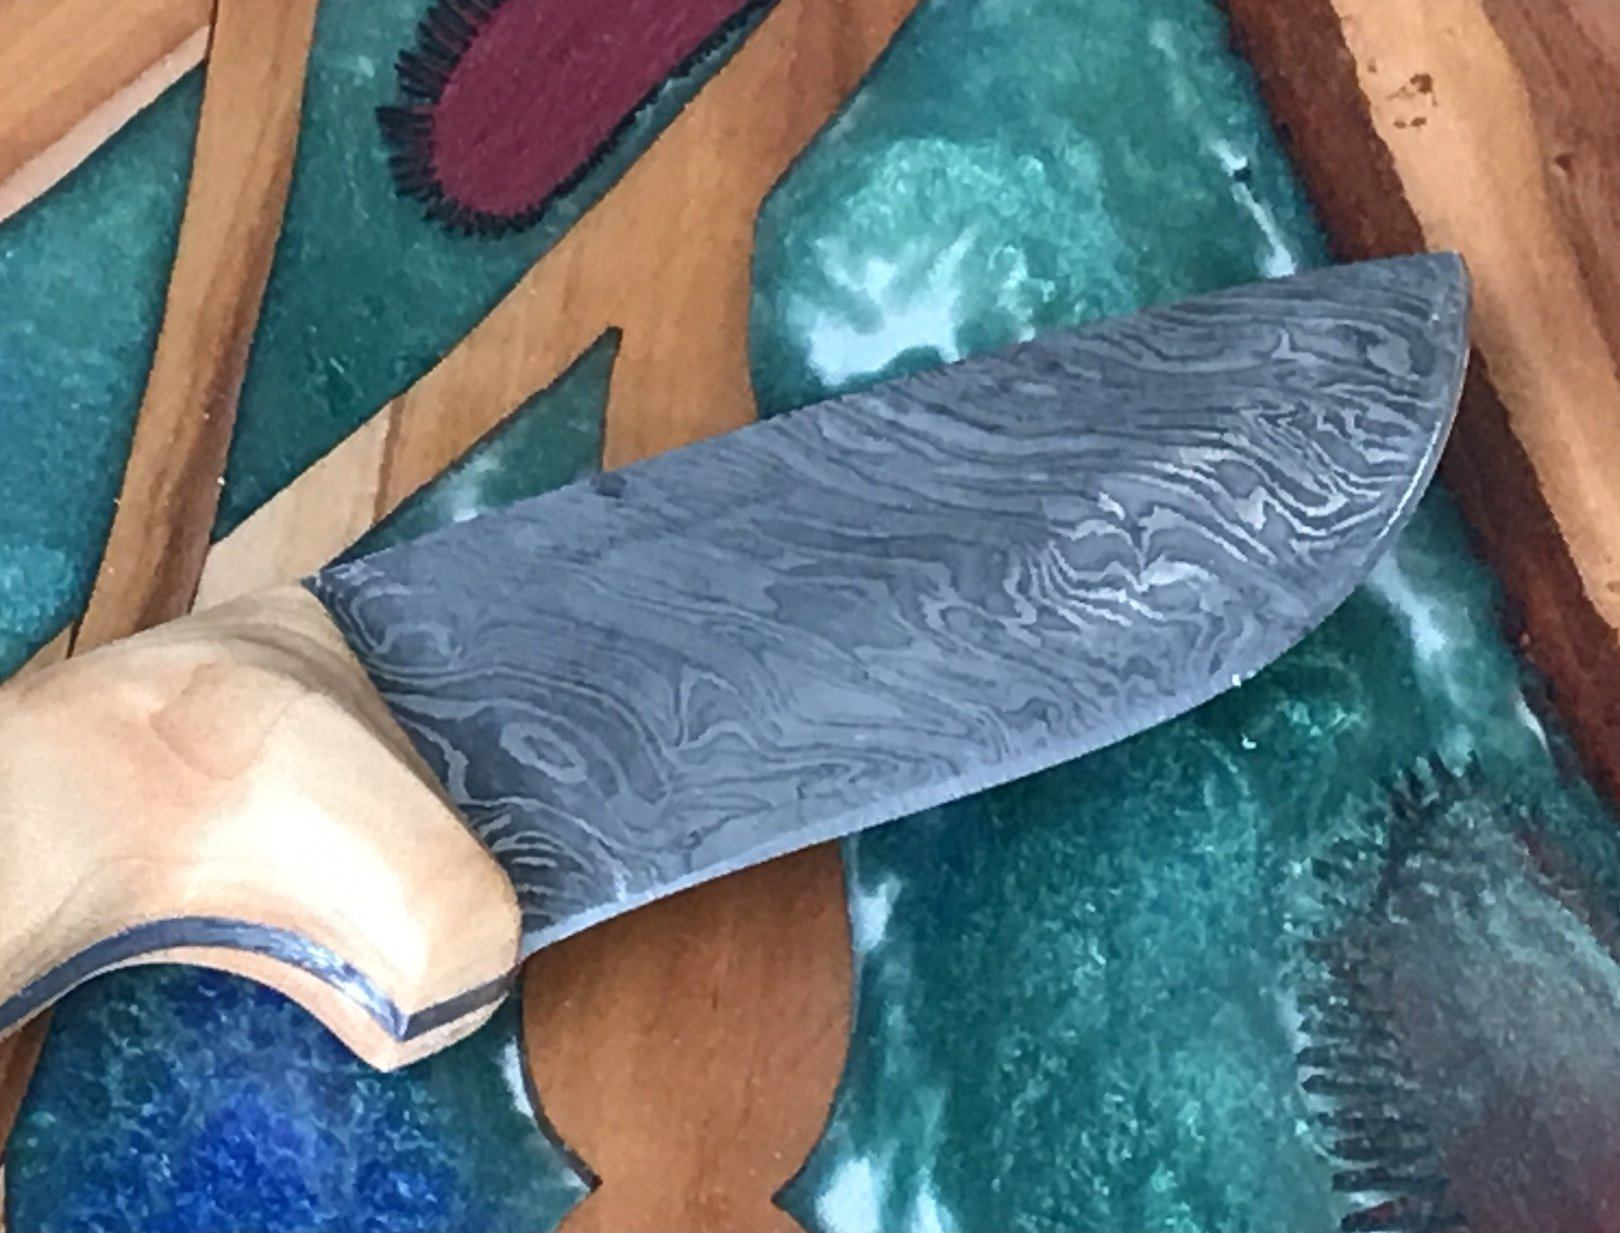 Ventana Quilted Maple Knife Damascus Steel Blade